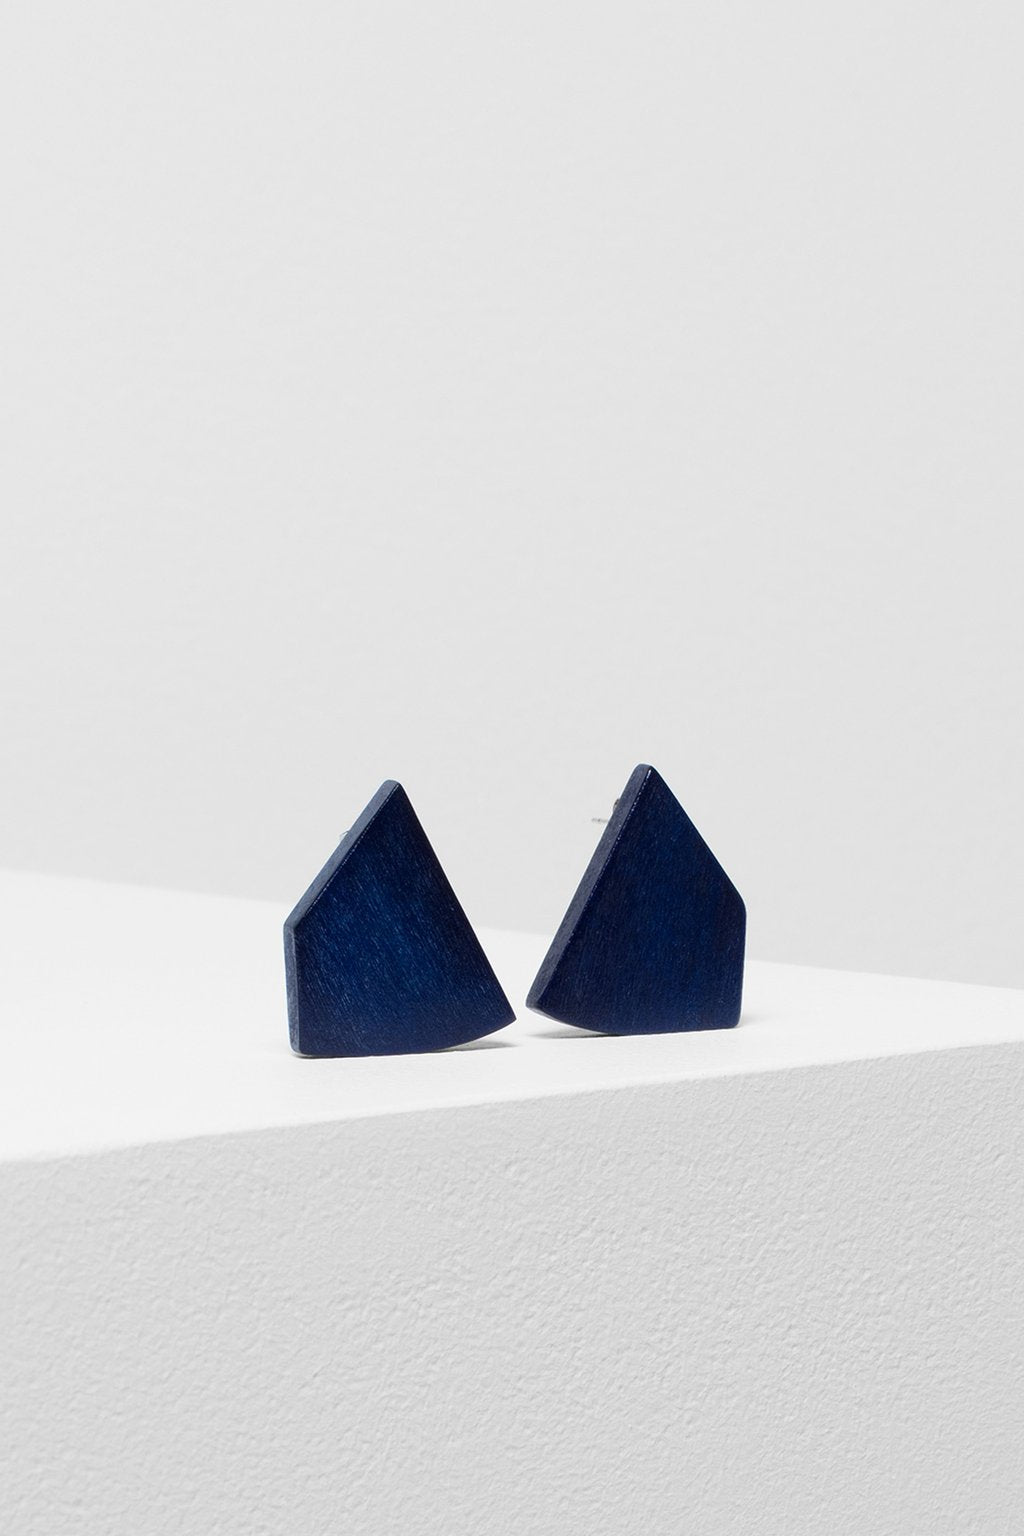 ELK-Johna Earring Navy-Mott and Mulberry